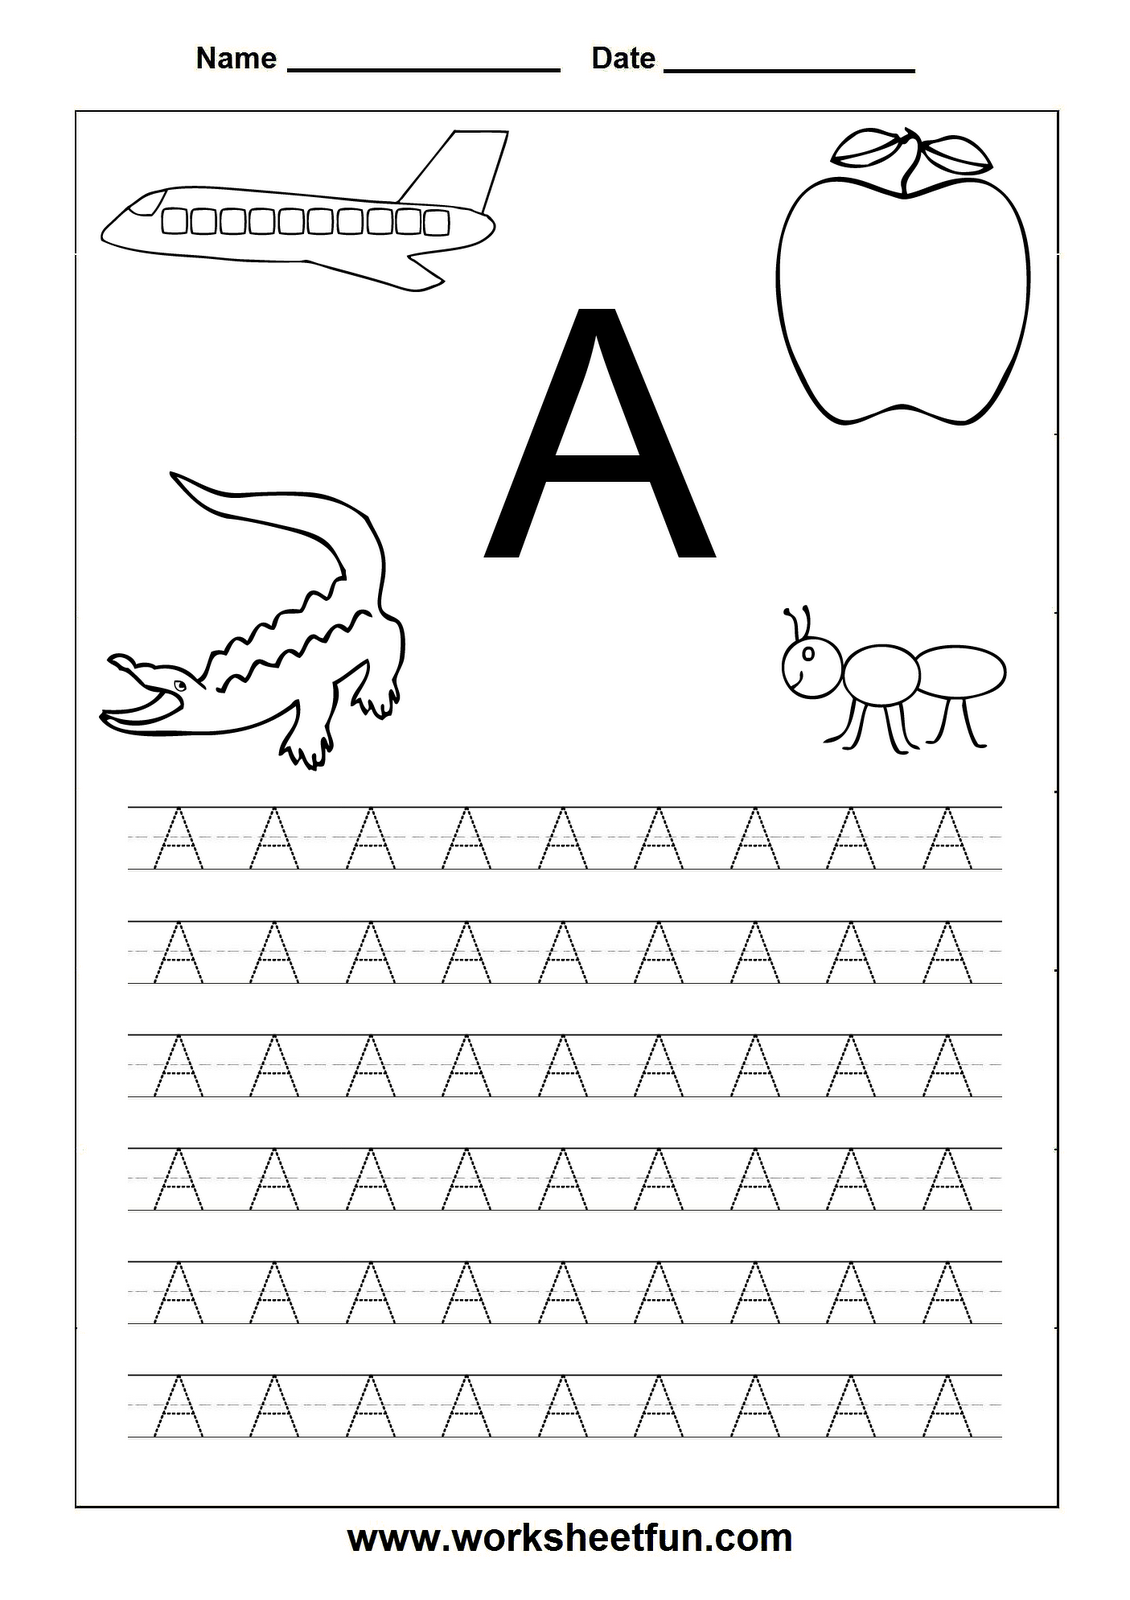 Worksheets Abc Worksheet For Preschool printables free printable preschool worksheets tracing letters letter s for a z